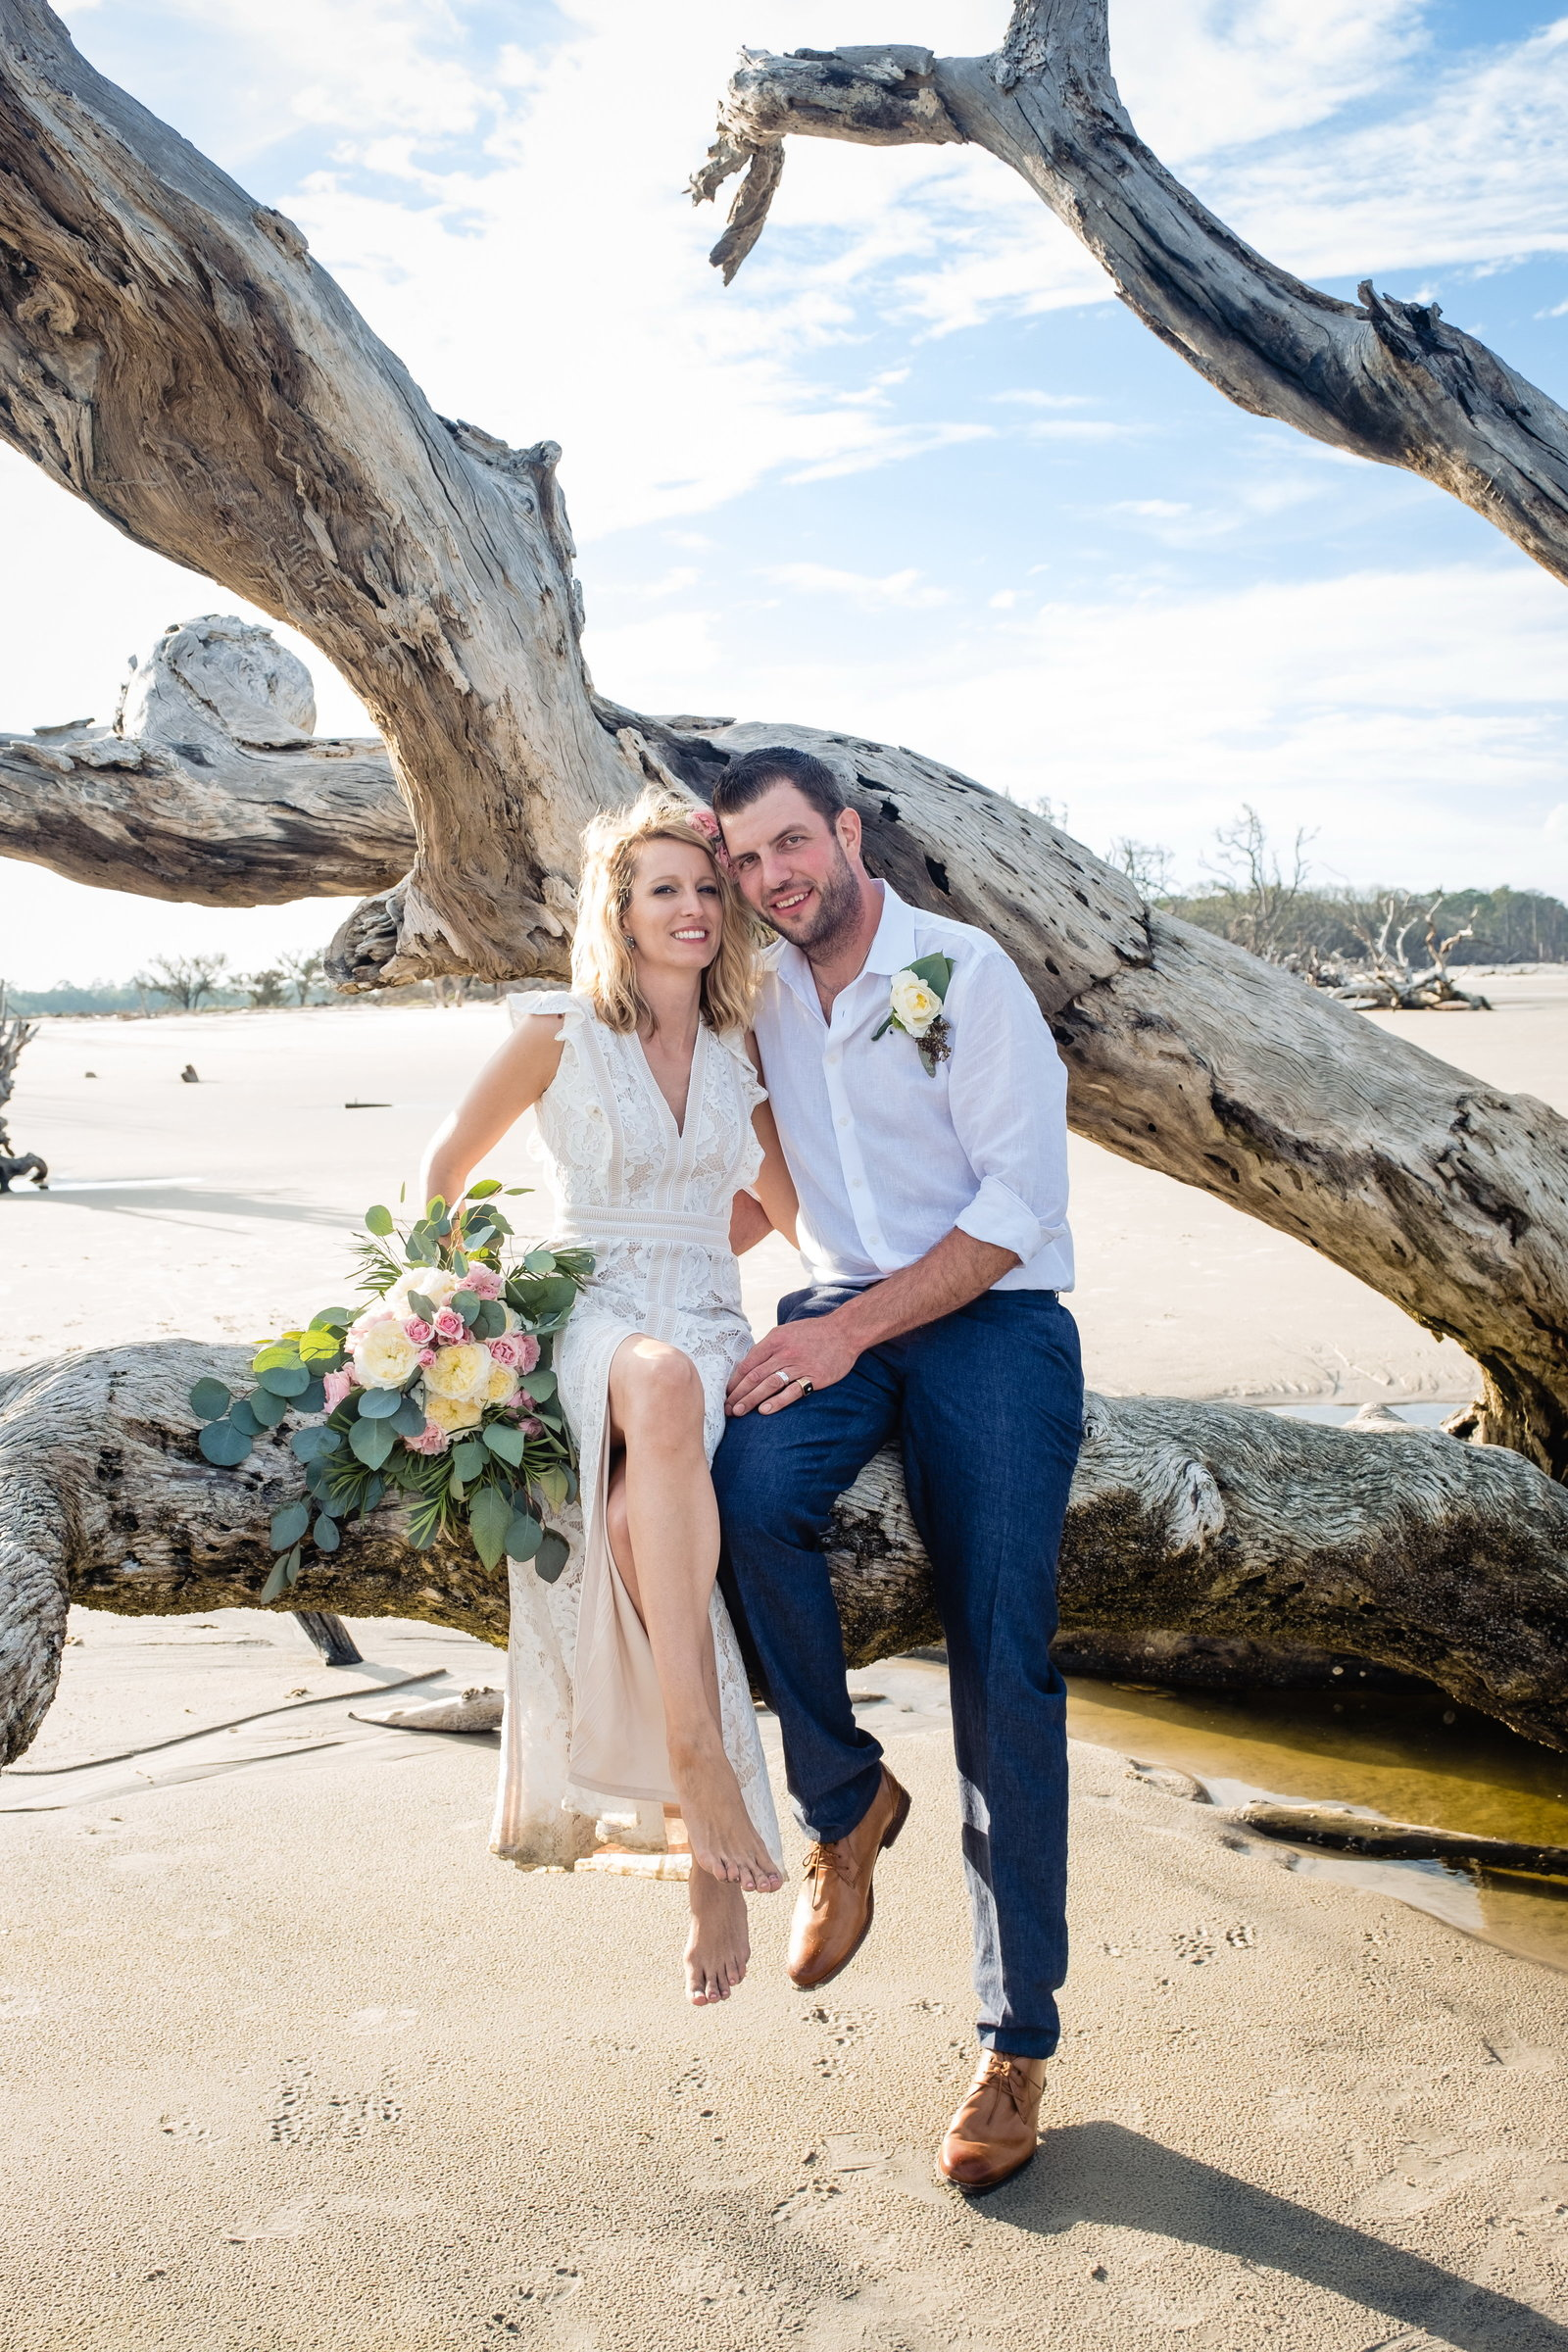 Driftwood Beach Wedding, Bobbi Brinkman Photography, Julie + Lance